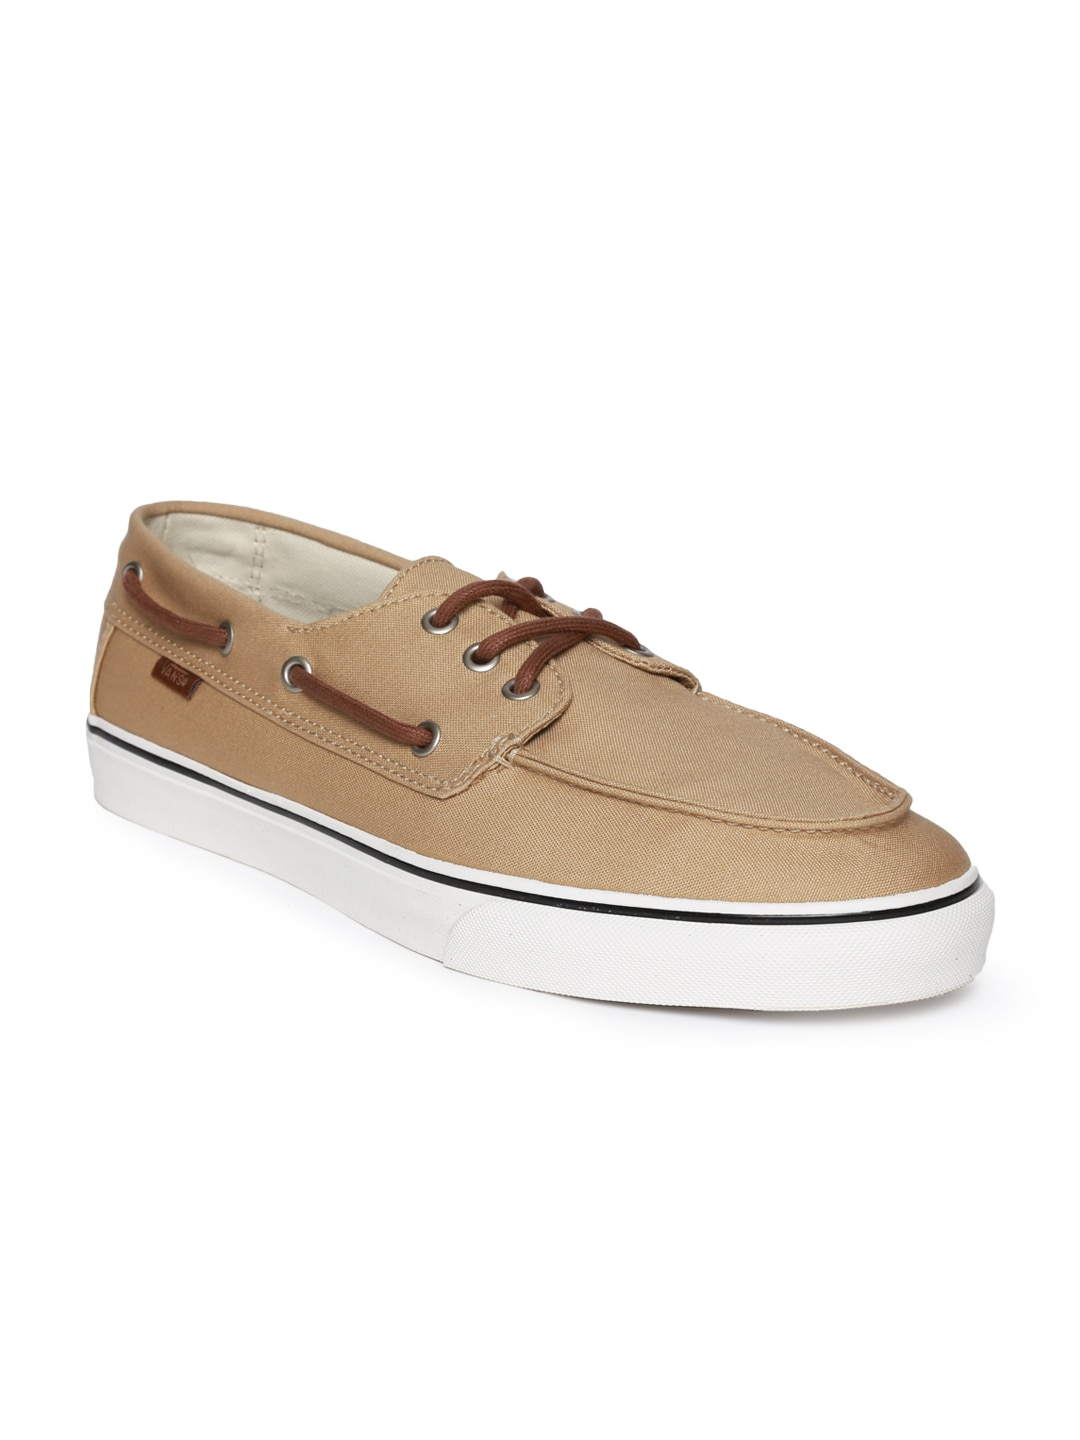 e835d307f6d Vans Casual Shoes - Buy Vans Casual Shoes Online in India